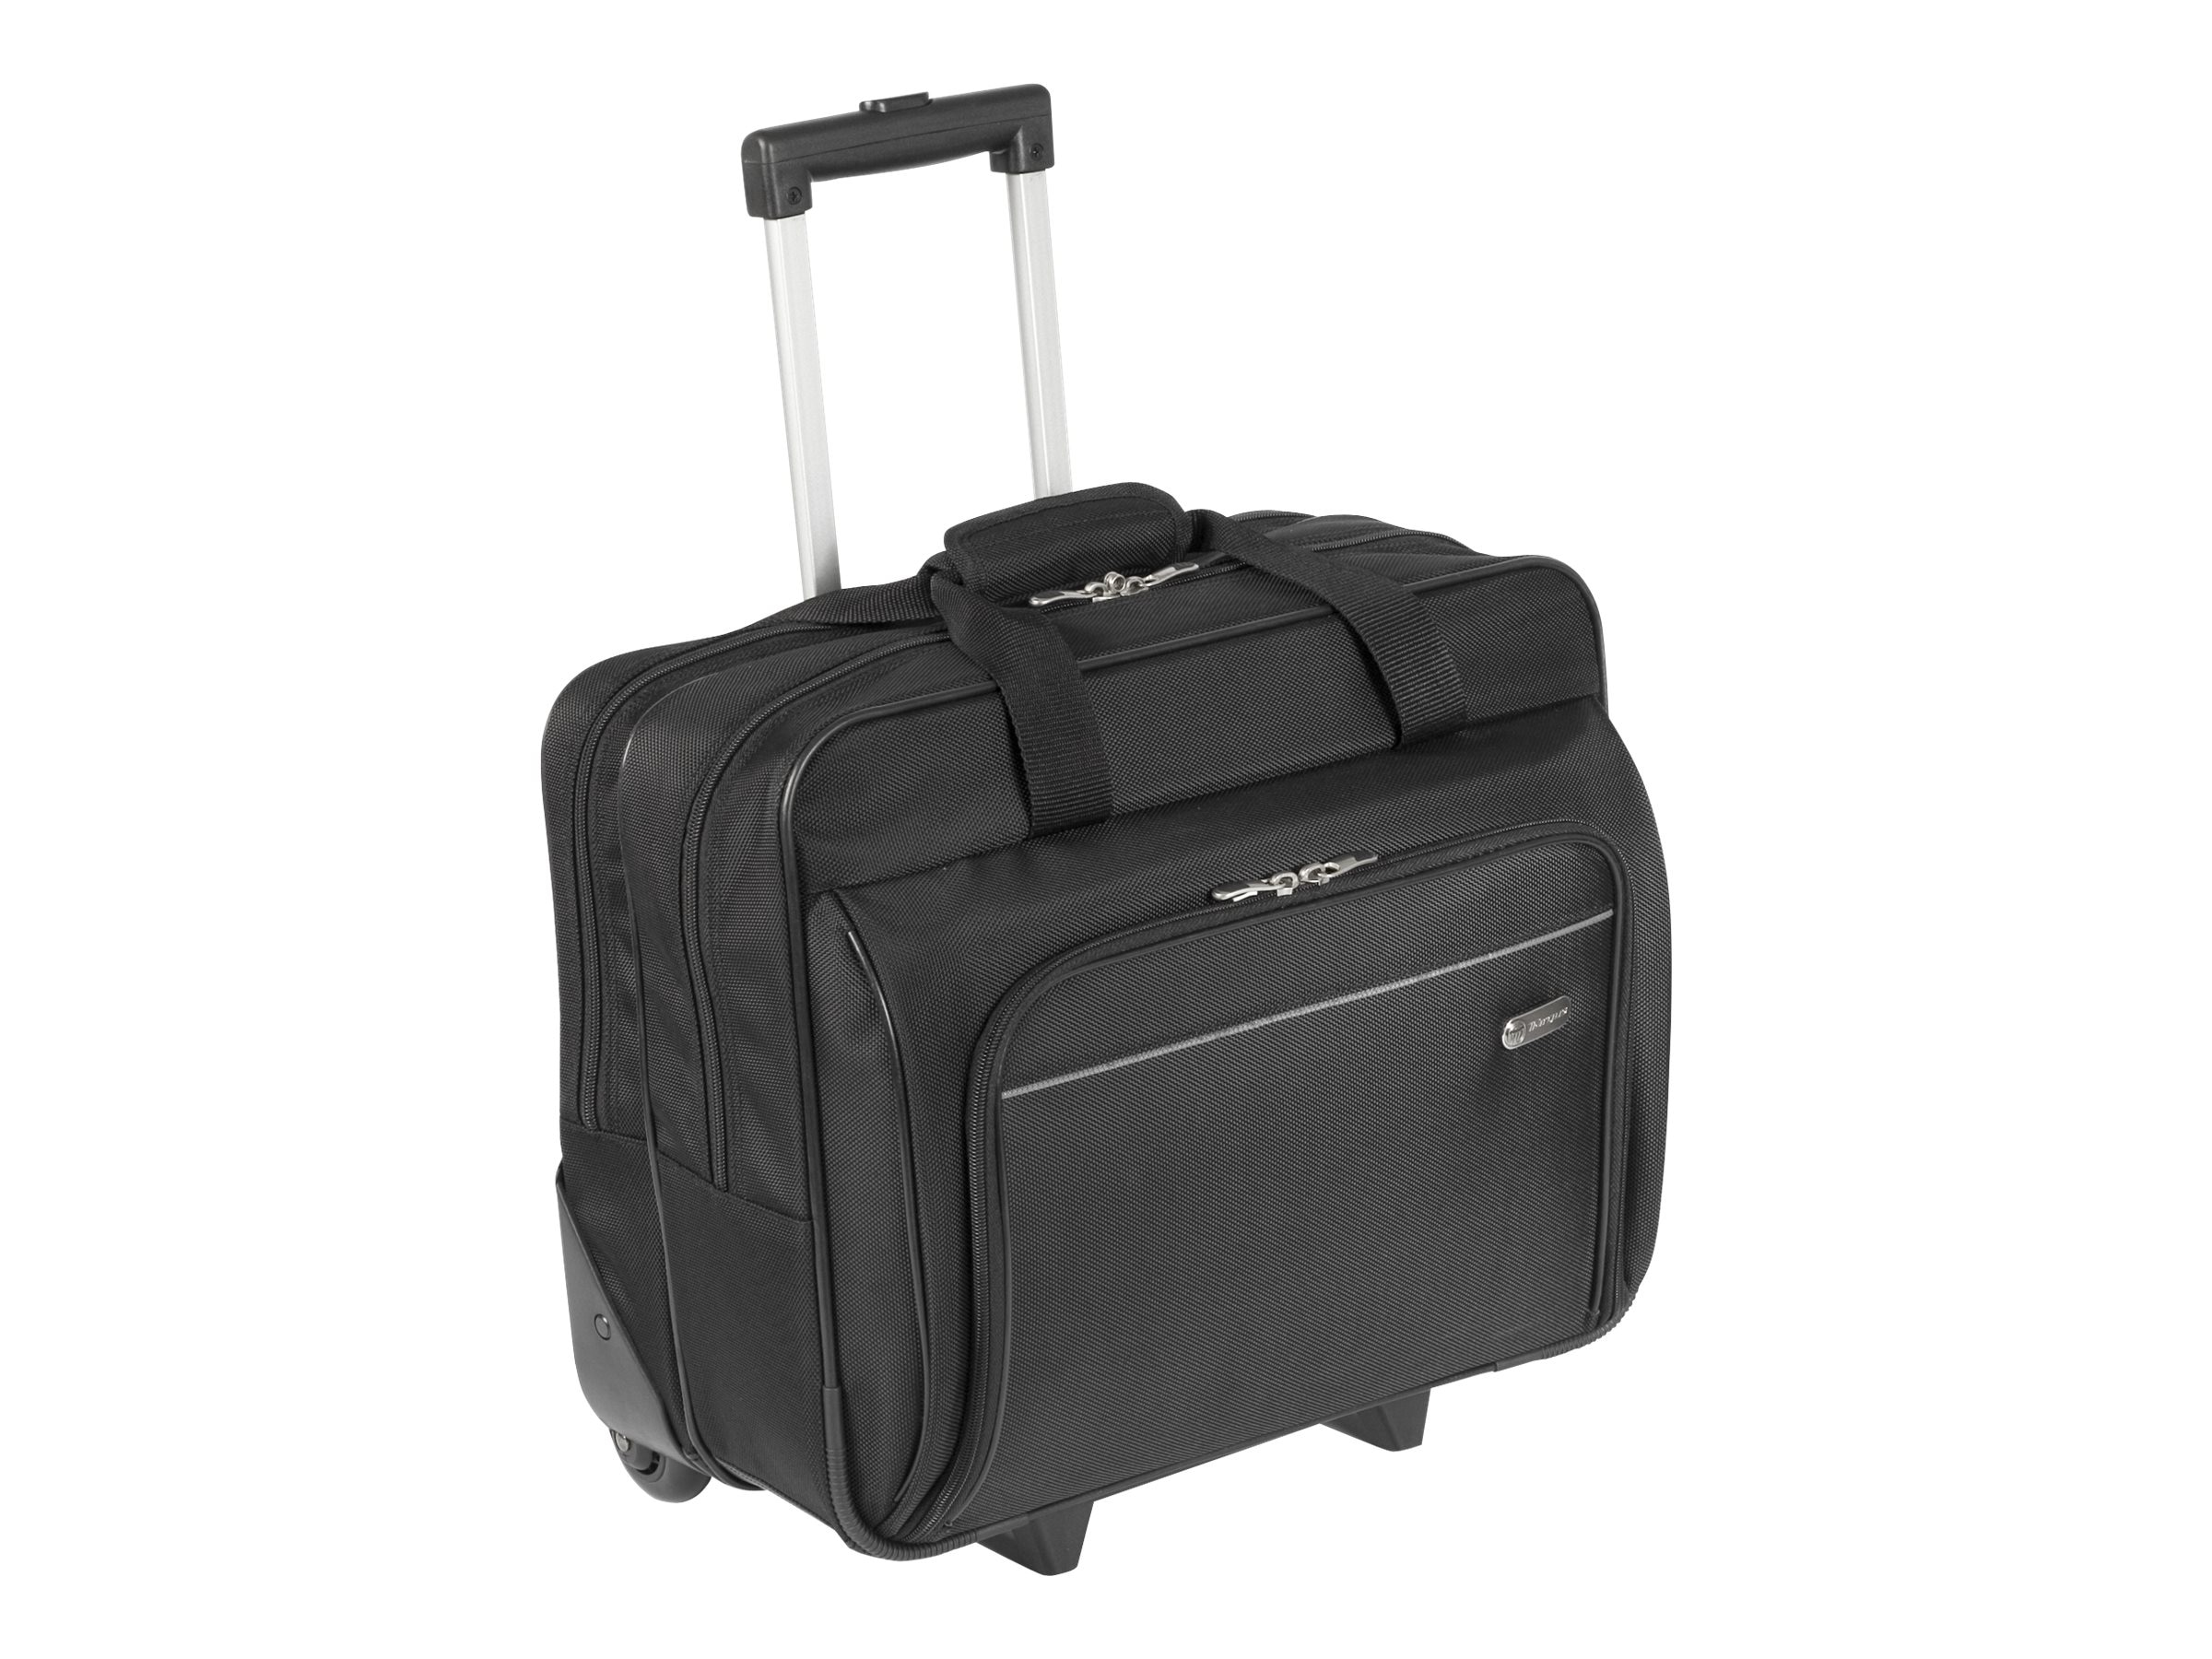 Lenovo Rolling Case for 16 Laptop, Targus, Black, 78000324